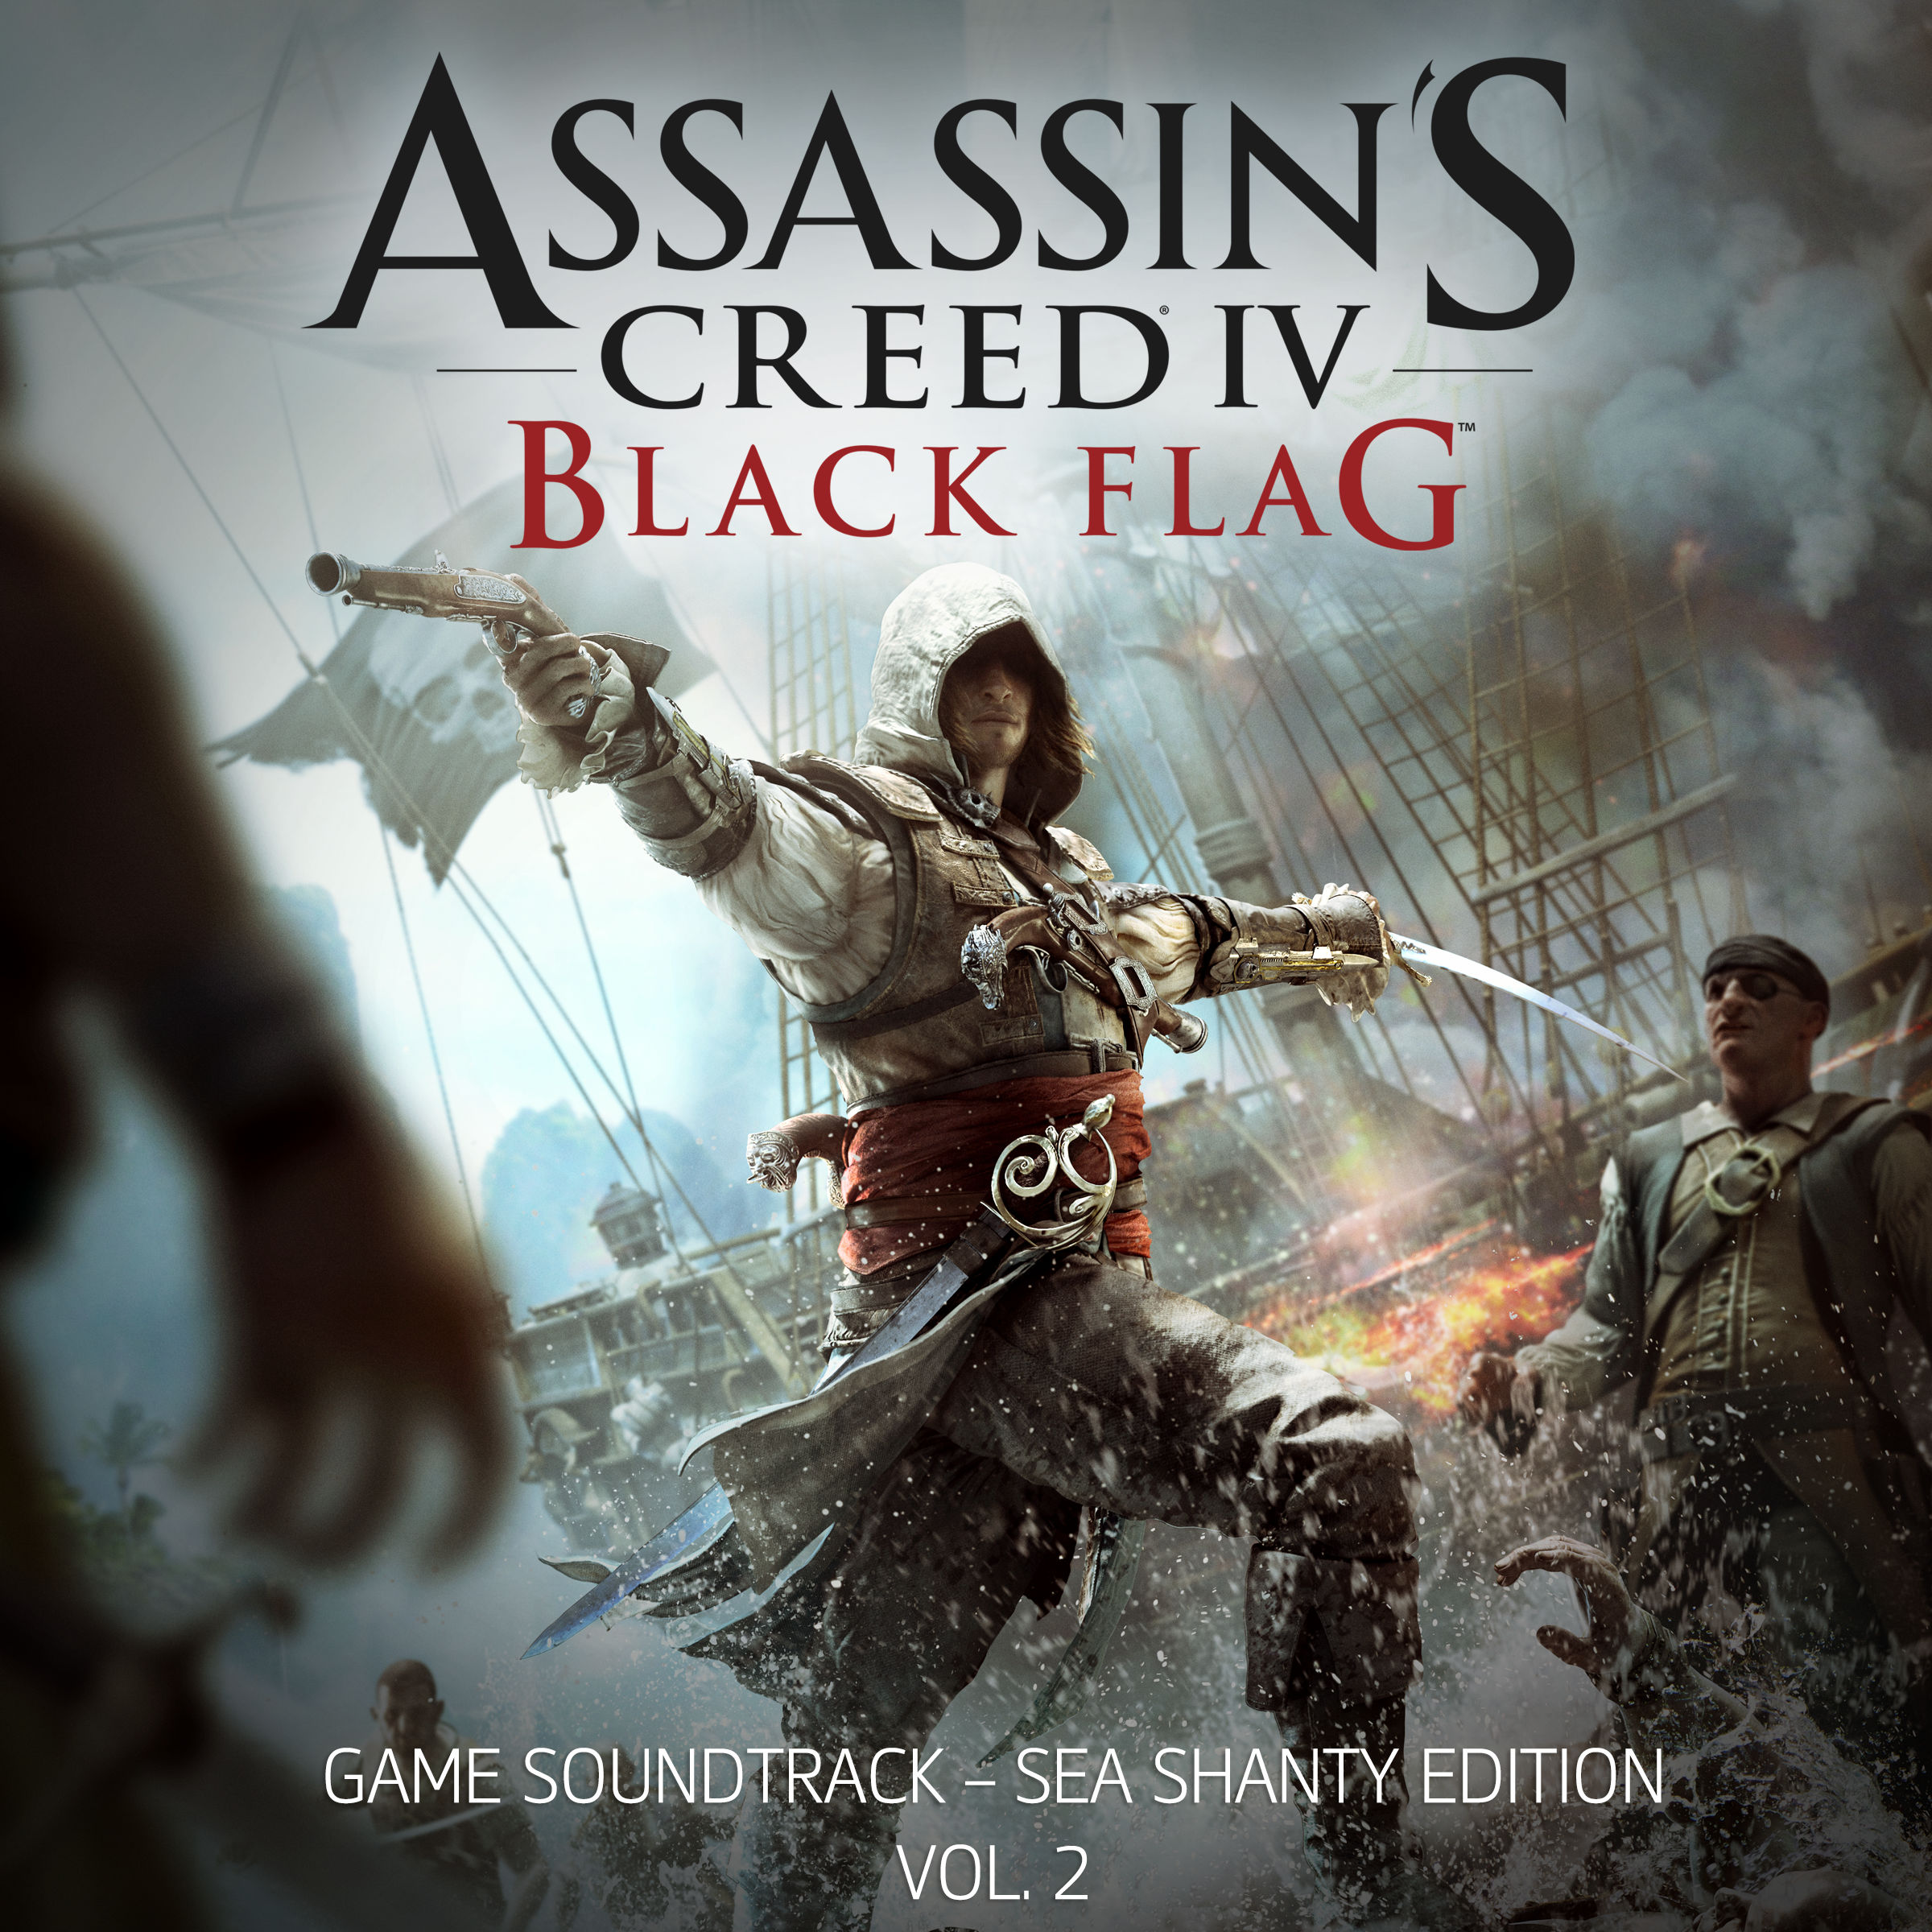 Assassin creed iv prizes and plunder meaning